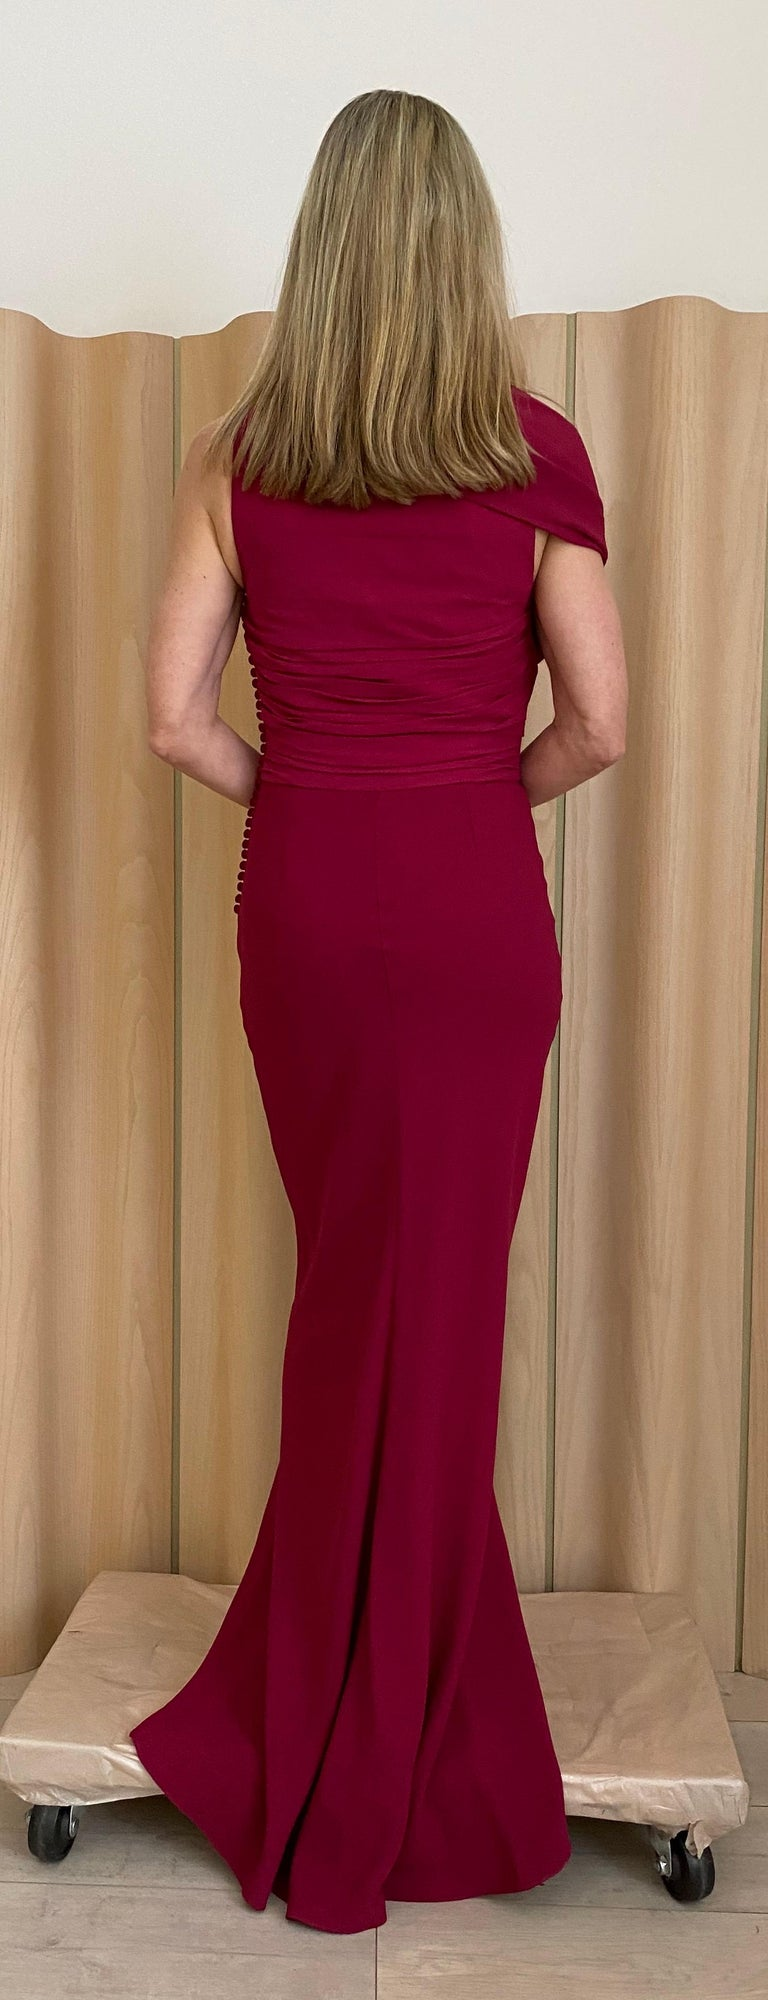 Christian Dior Red Pink Gown For Sale 3